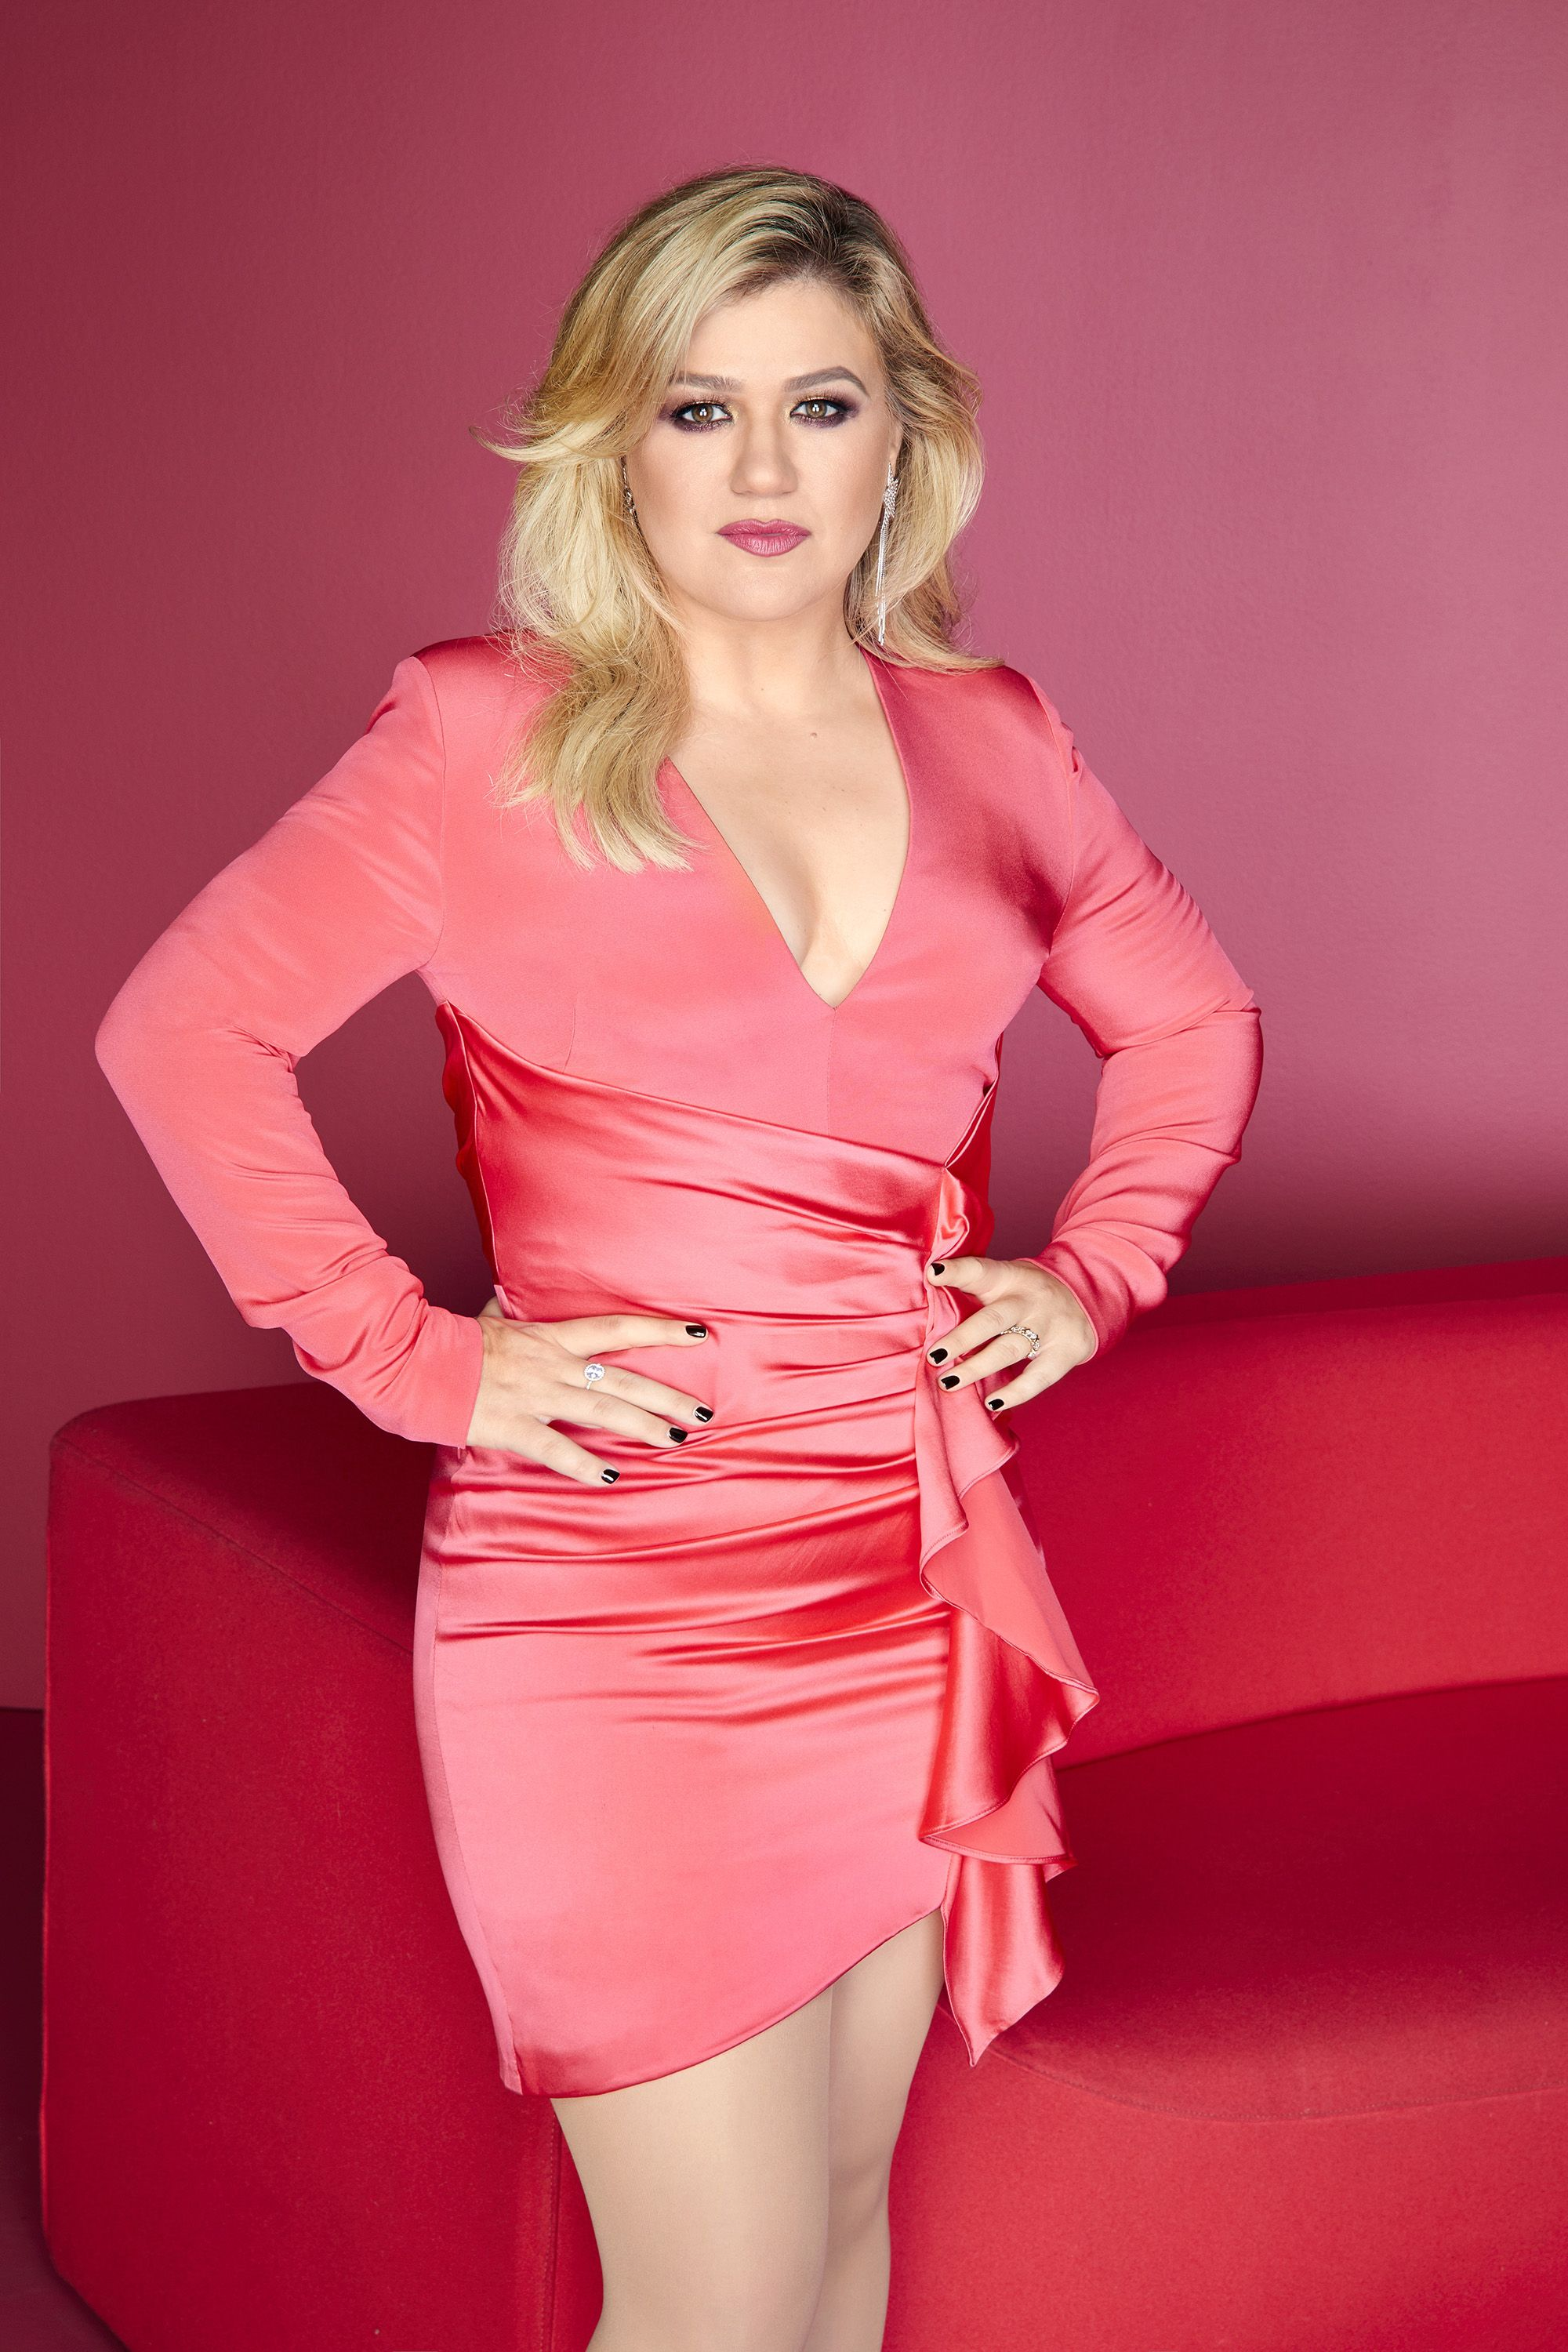 Where Is Kelly Clarkson From And Where Does She Live Now?